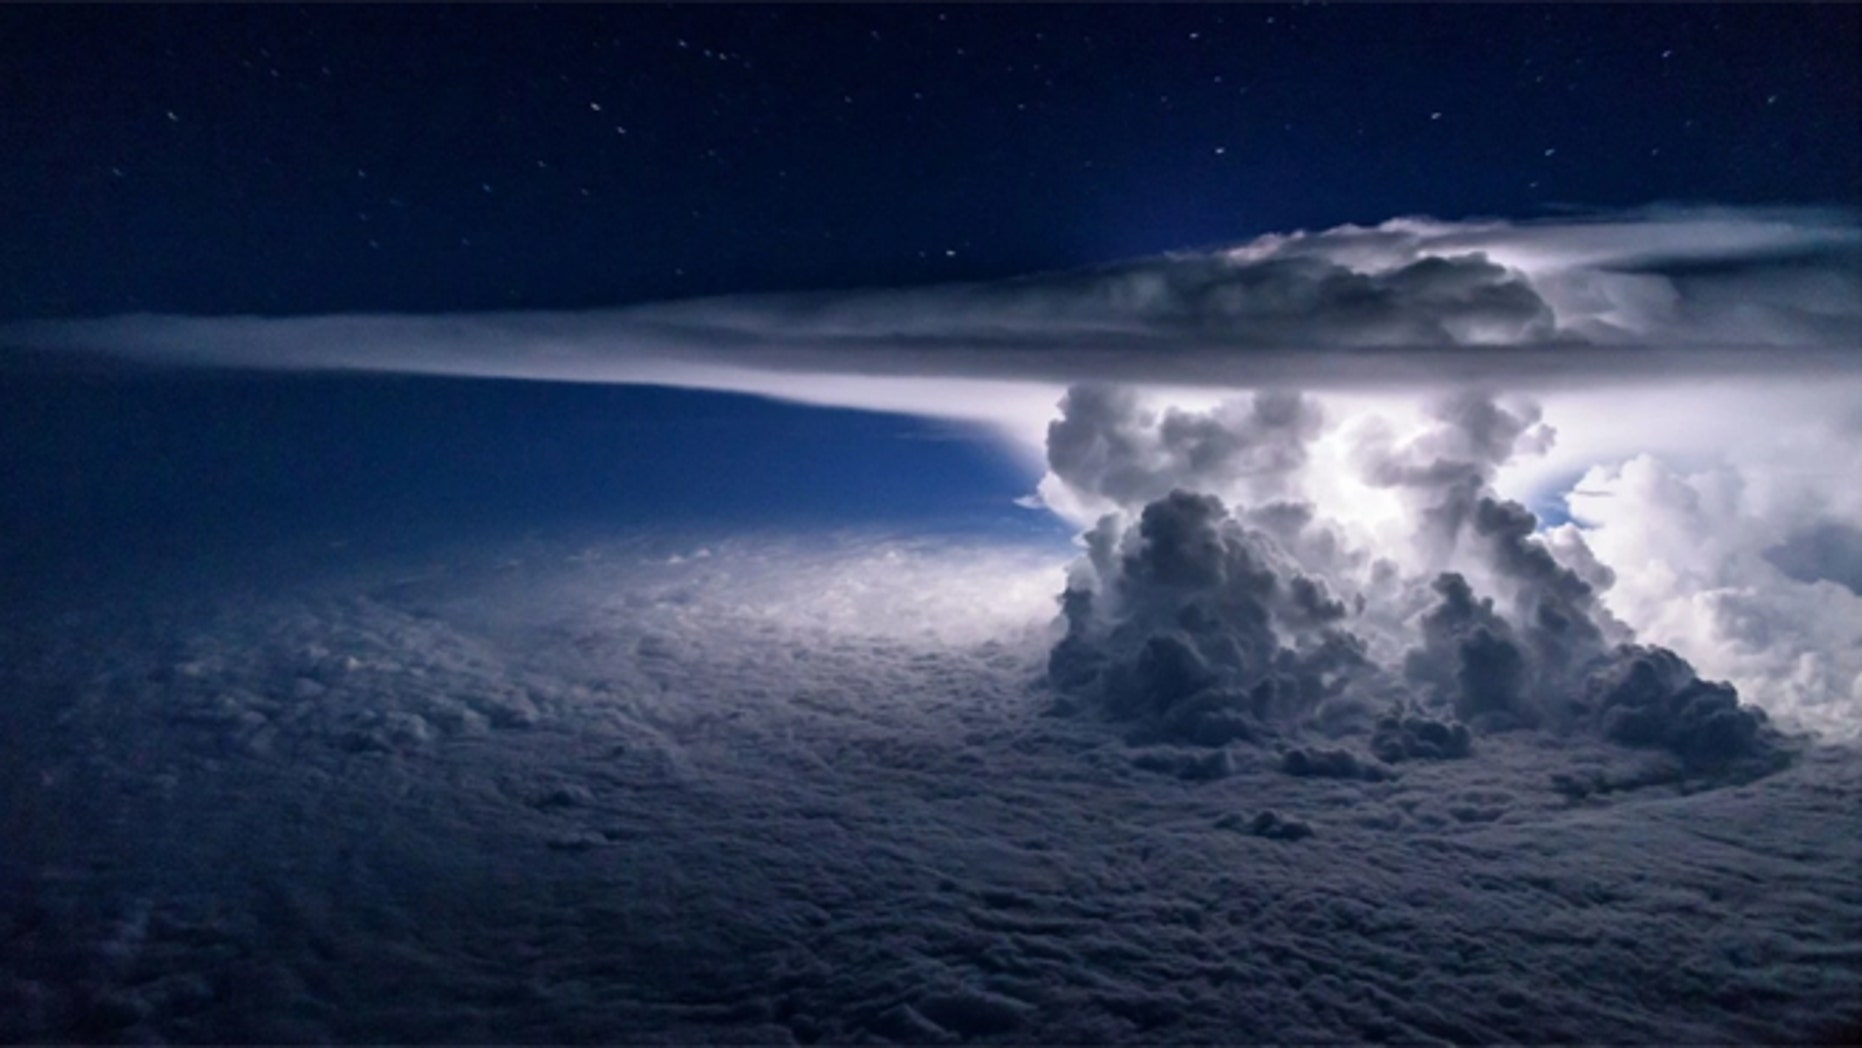 A thunderstorm over the Pacific Ocean south of Panama. (Photo: Santiago Borja, used with permission)